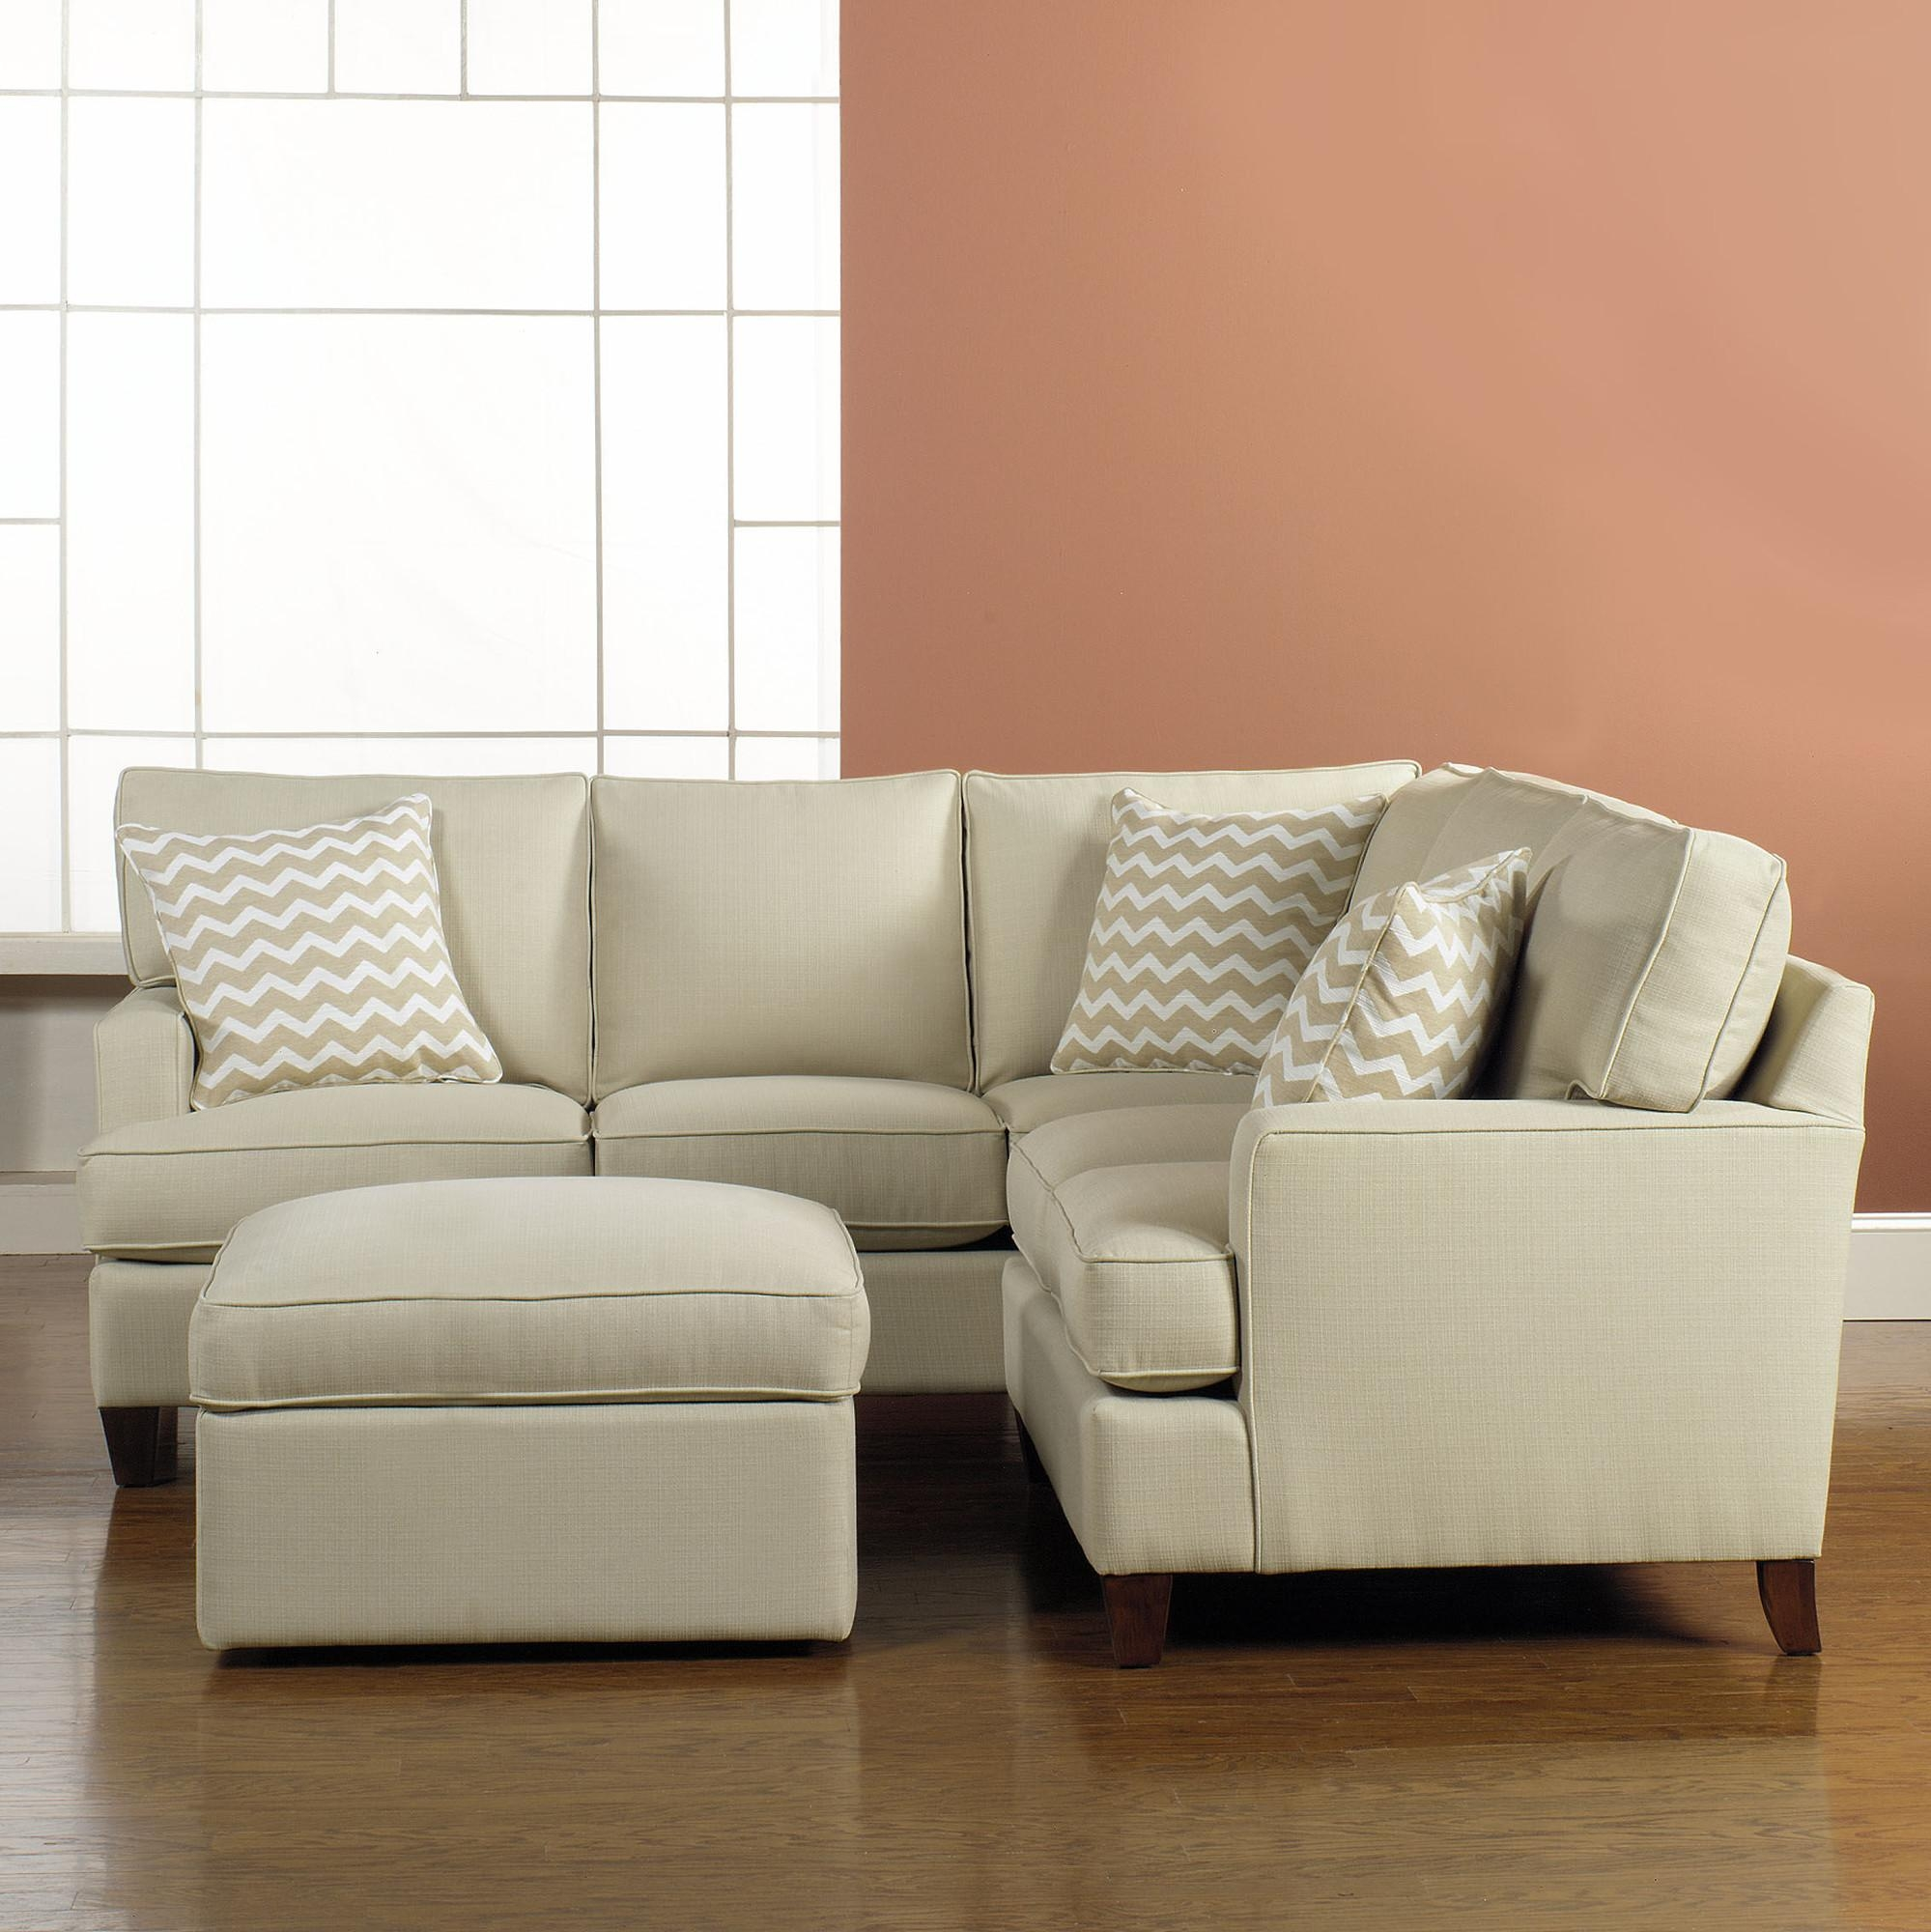 Plain Couches For Small Apartments R Inside Decorating With Regard To Sectional Small Space (Image 15 of 20)